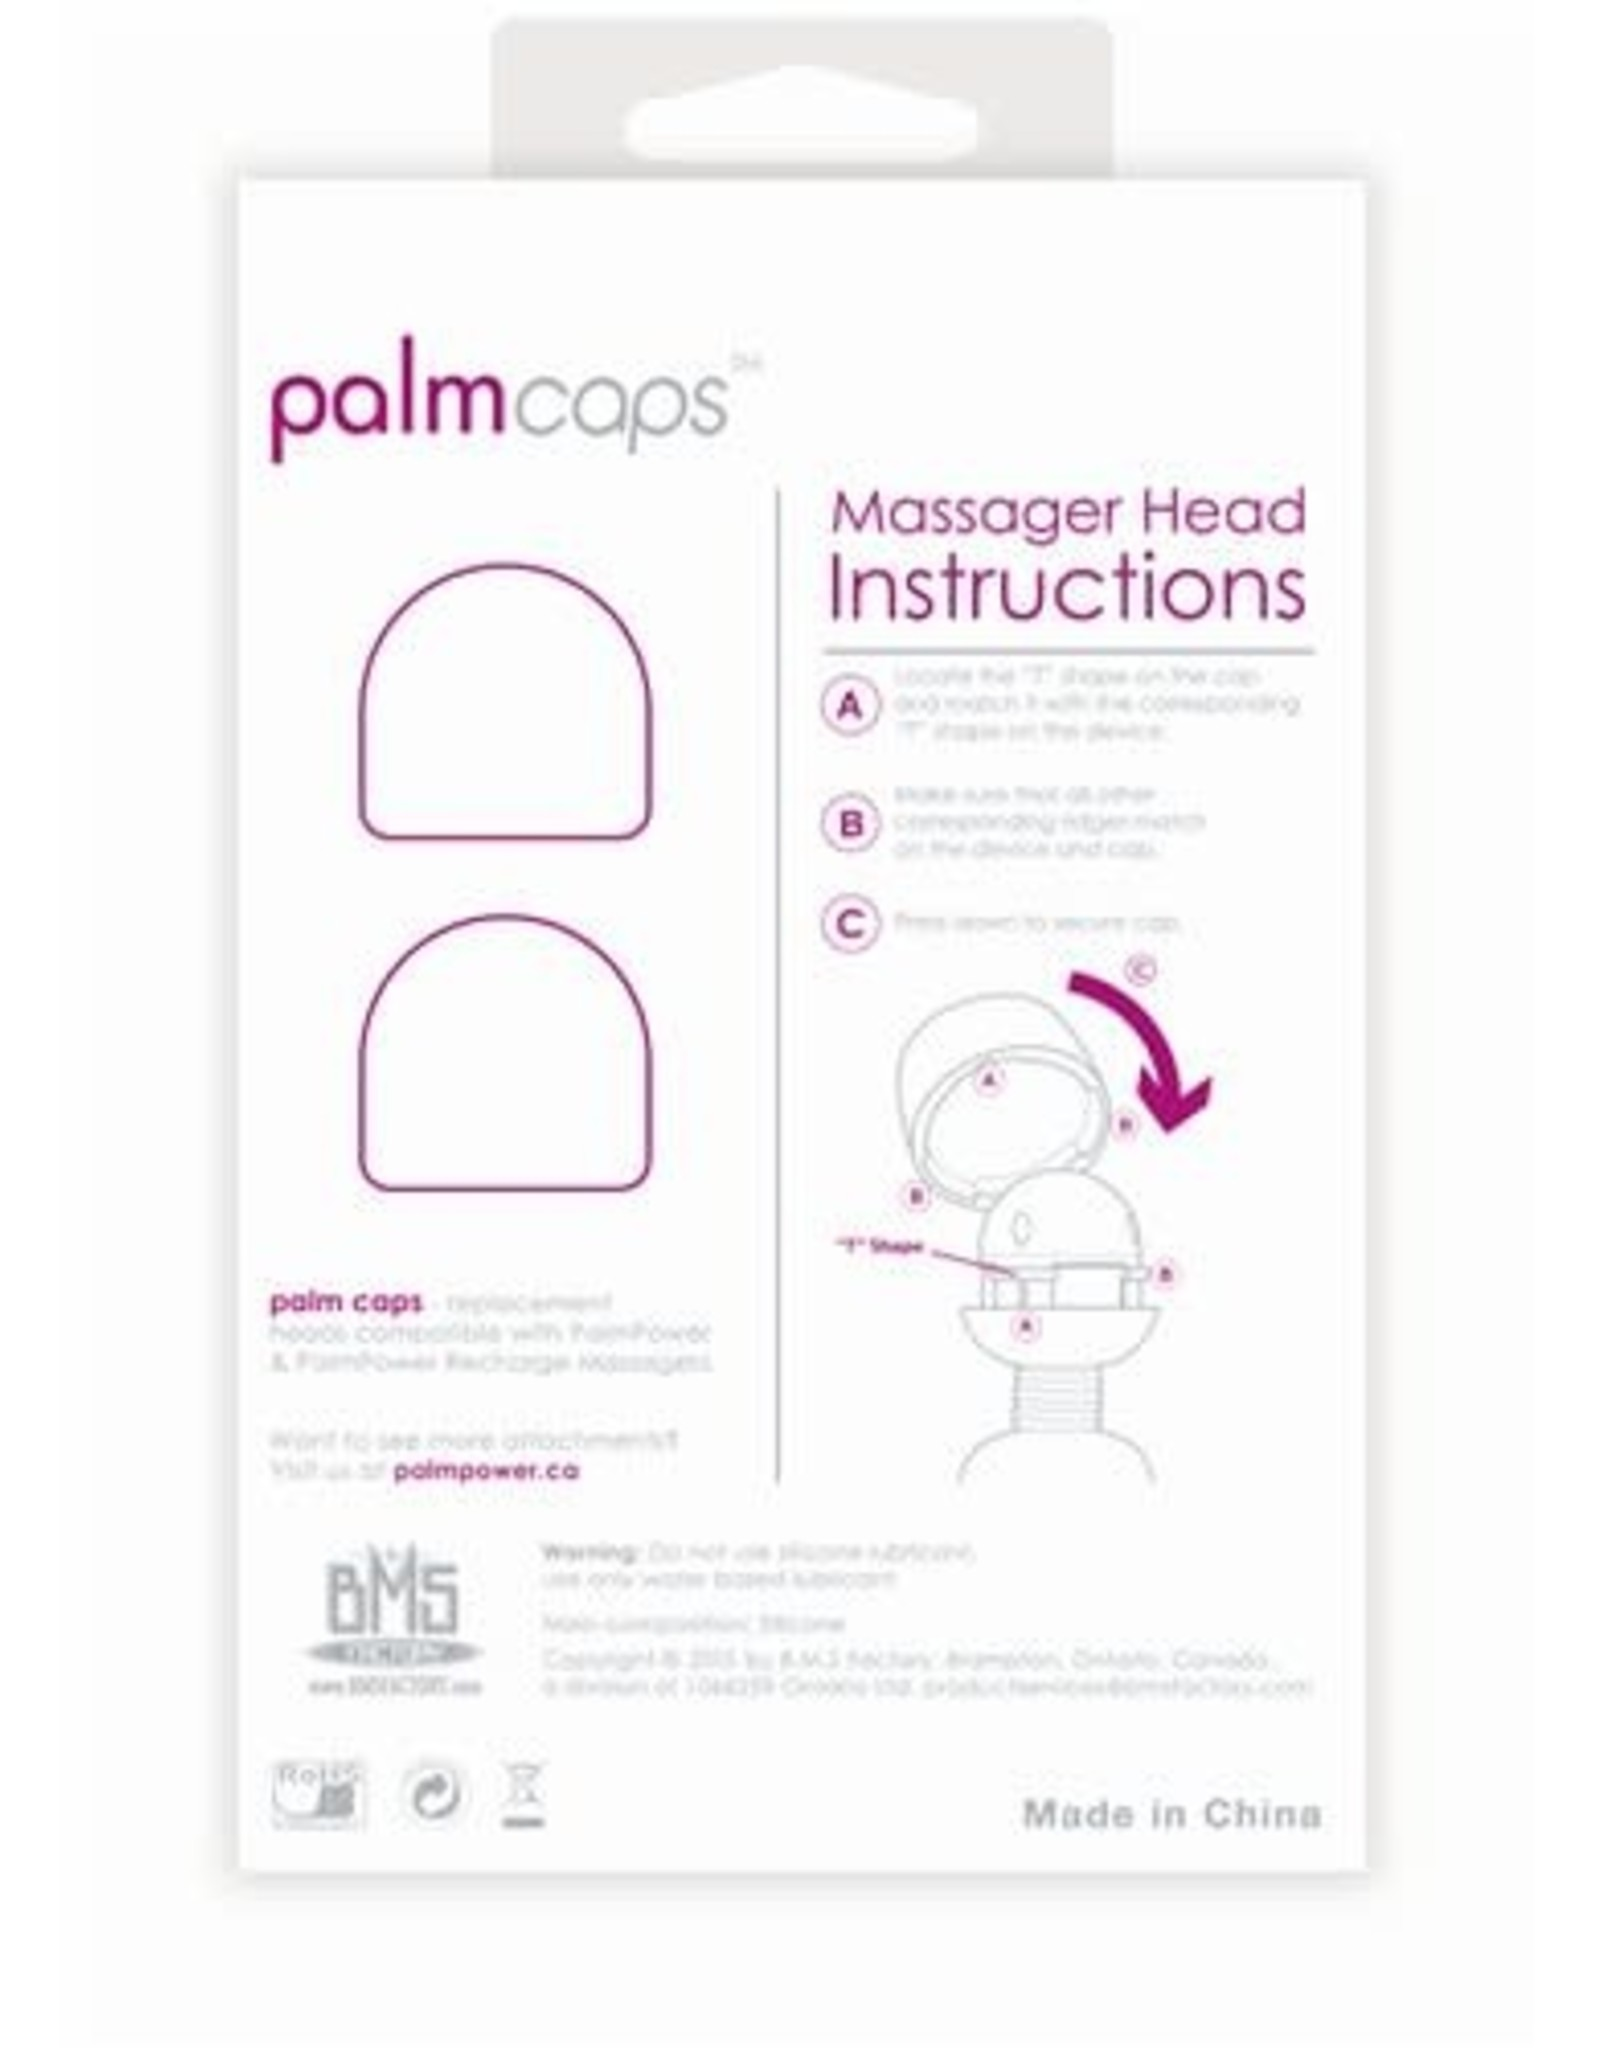 Palm Power Palm Power Palm Caps 2 Silicone Massager Heads